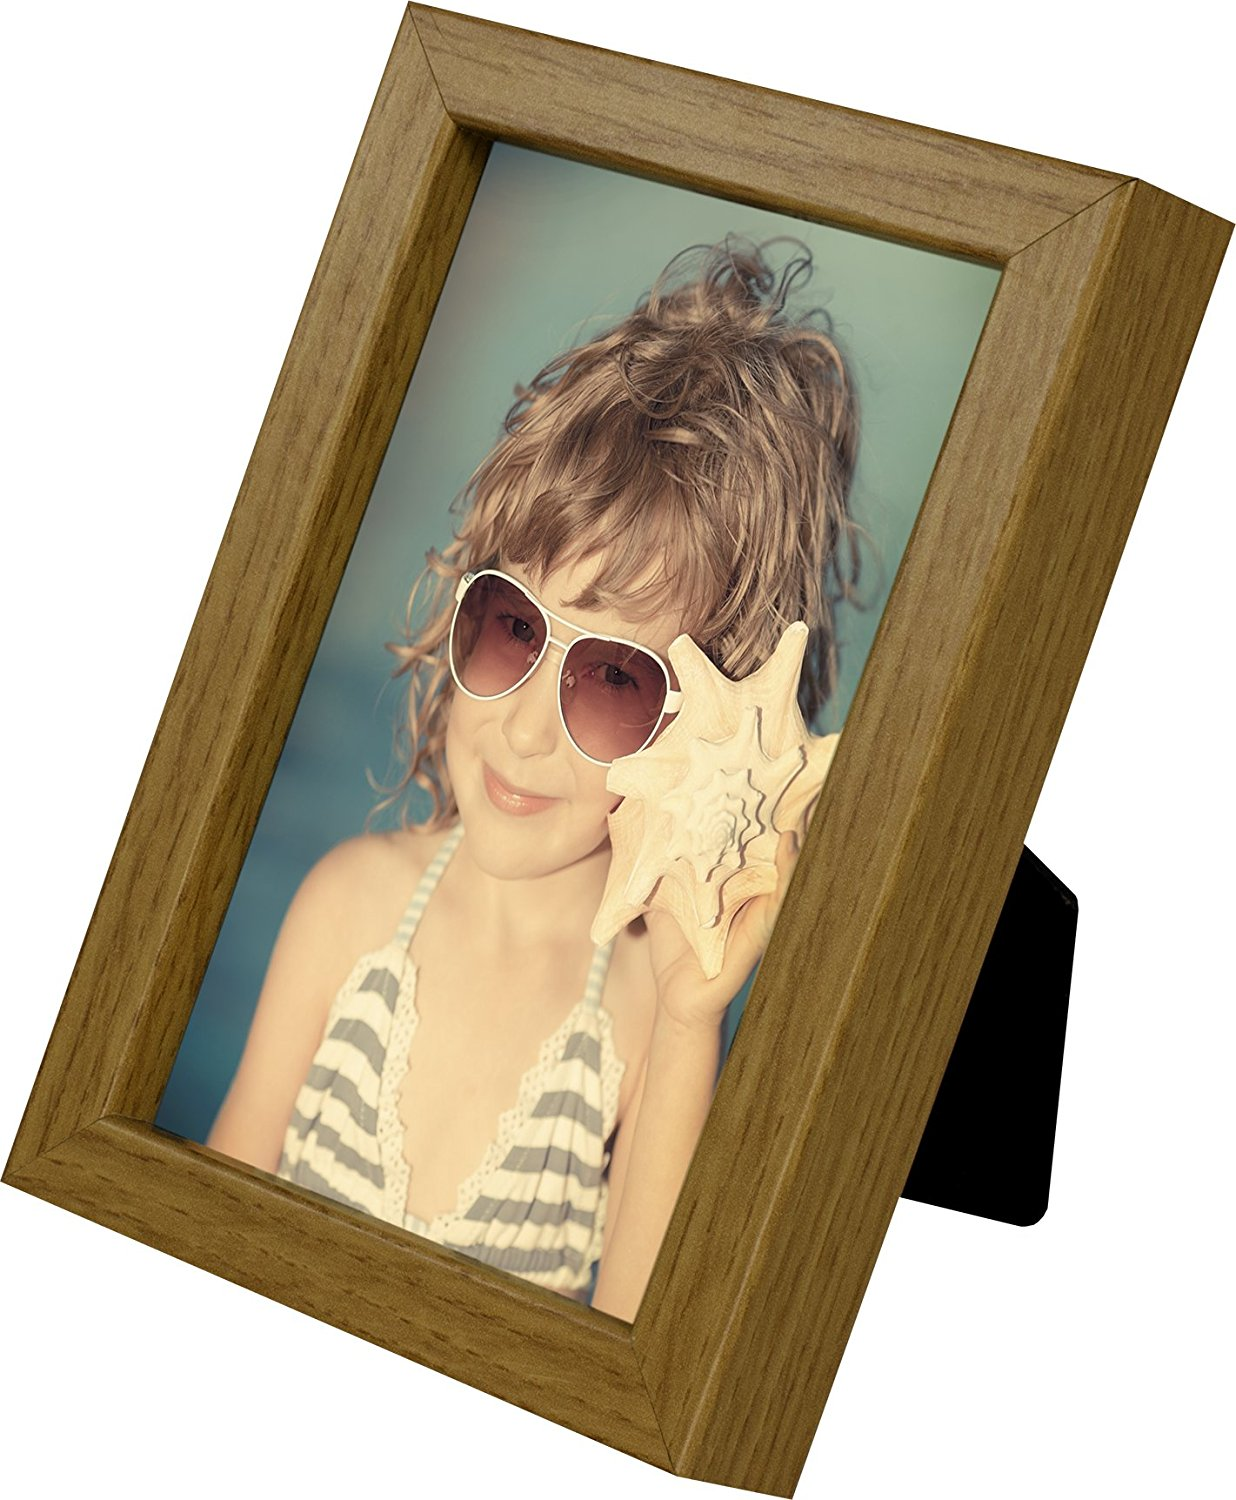 4 x 6-Inch Picture Photo Frame, OAK